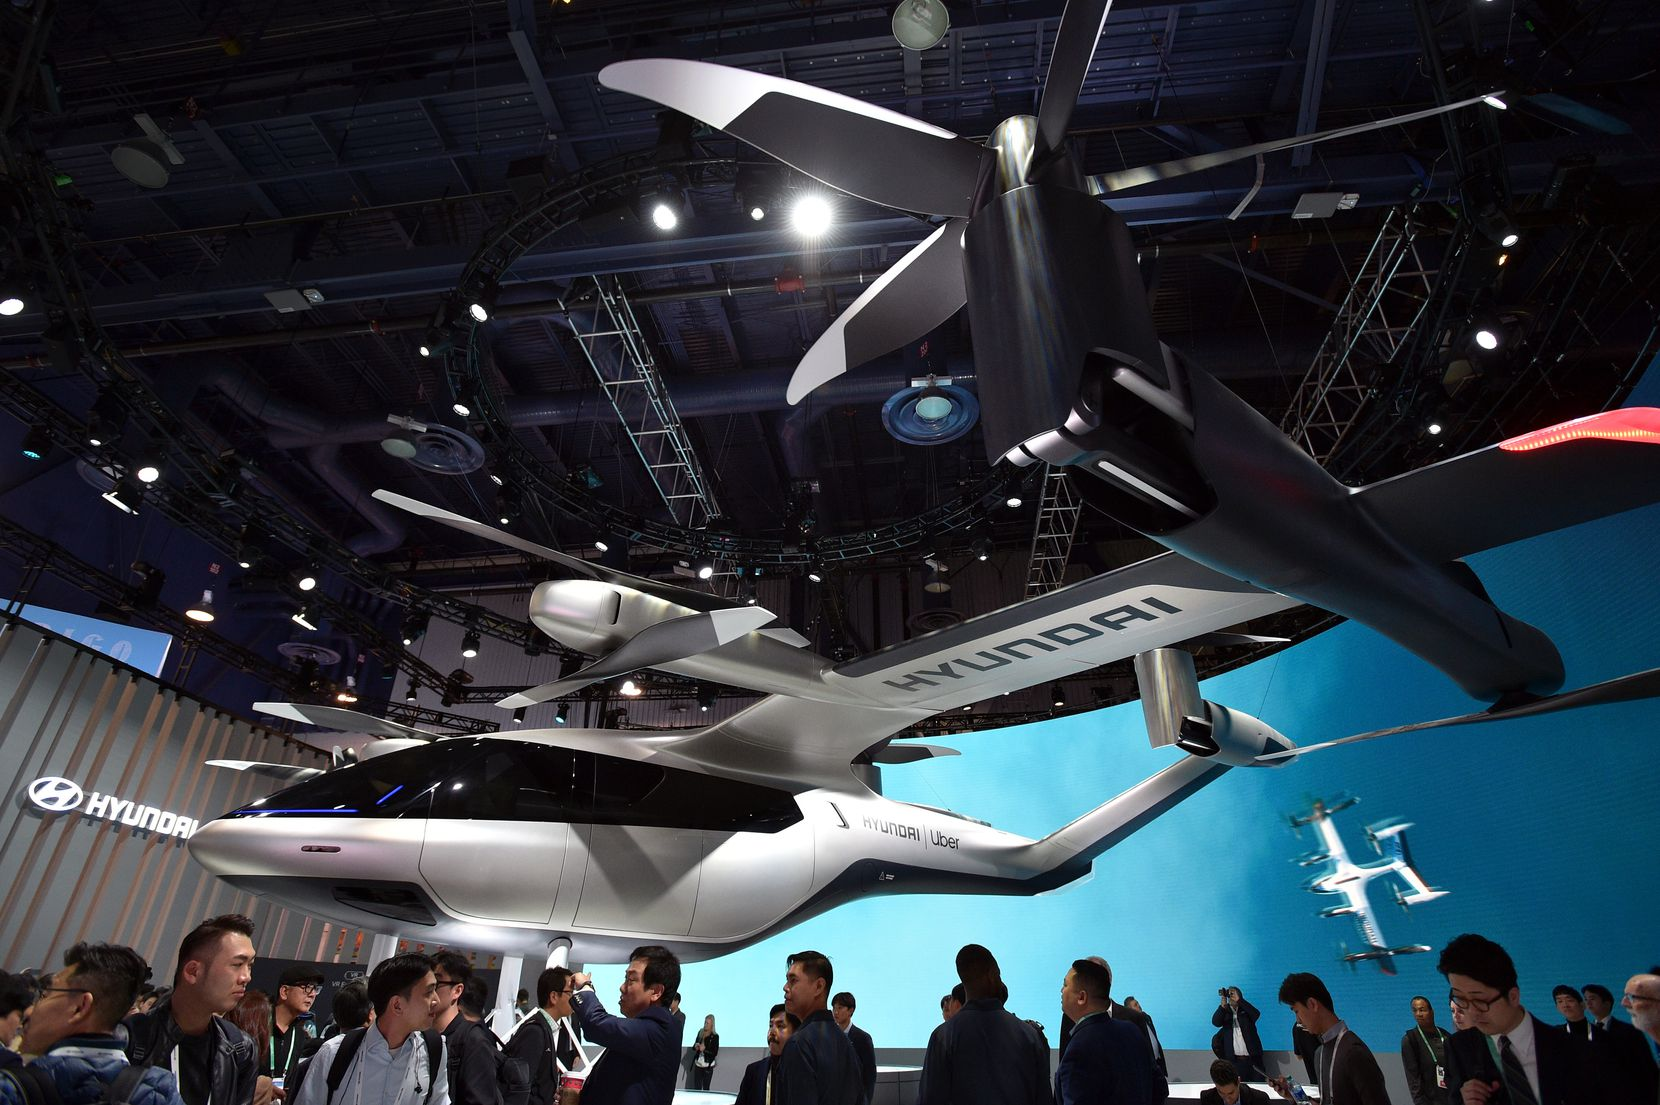 LAS VEGAS, NEVADA - JANUARY 07:  Hyundai and Uber's all-electric full-scale electric air taxi, S-AI, is displayed during CES 2020 at the Las Vegas Convention Center on January 7, 2020 in Las Vegas, Nevada. CES, the world's largest annual consumer technology trade show, runs through January 10 and features about 4,500 exhibitors showing off their latest products and services to more than 170,000 attendees. (Photo by David Becker/Getty Images)